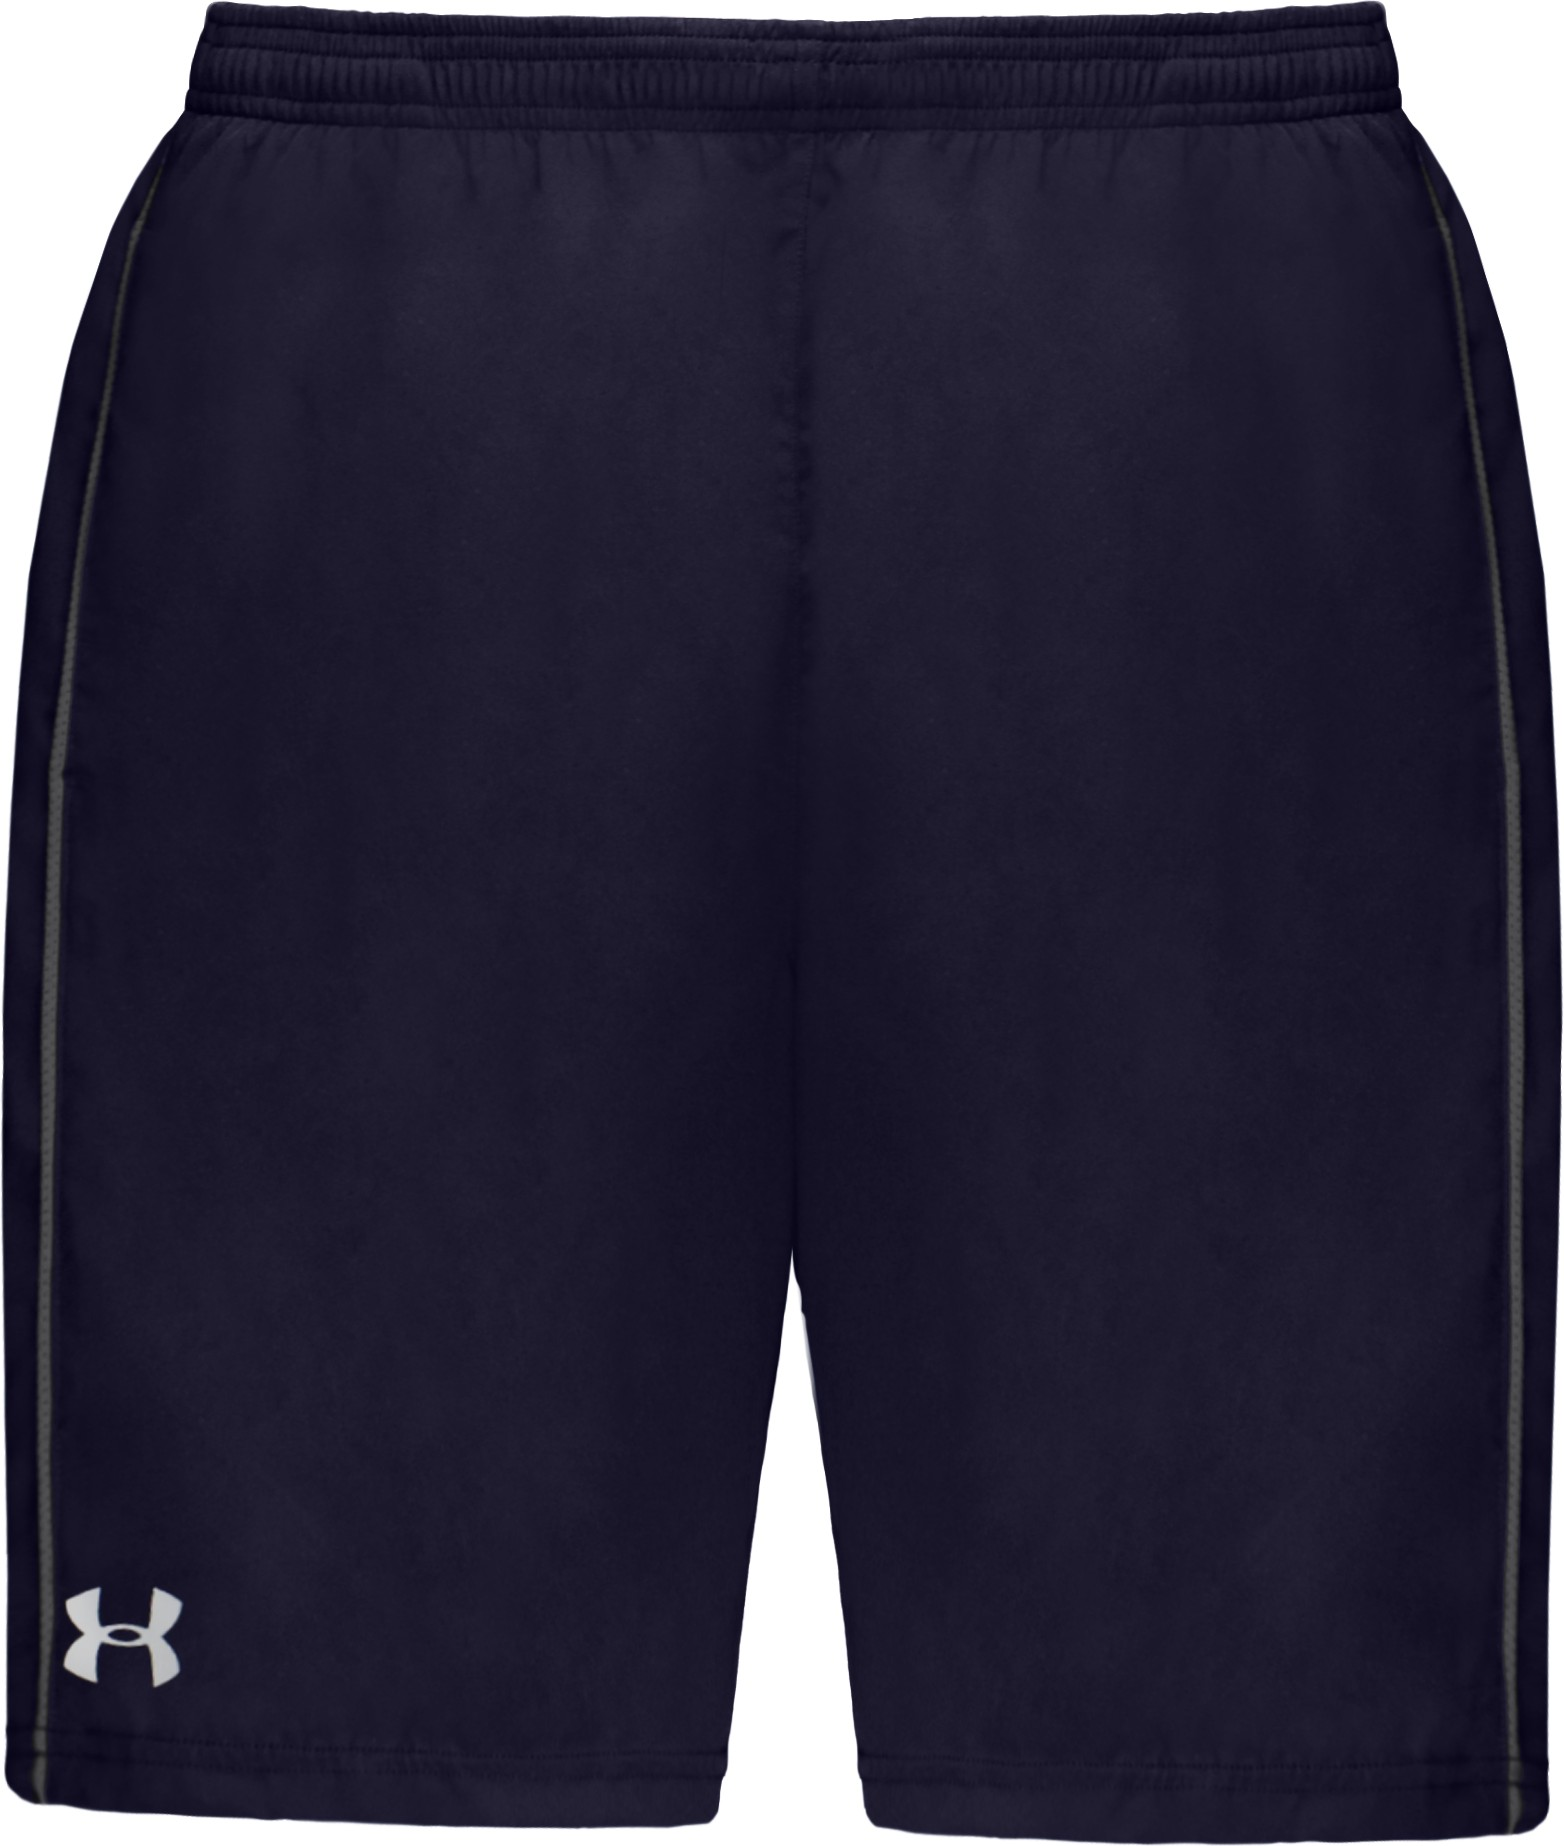 Under Armour Transit Short